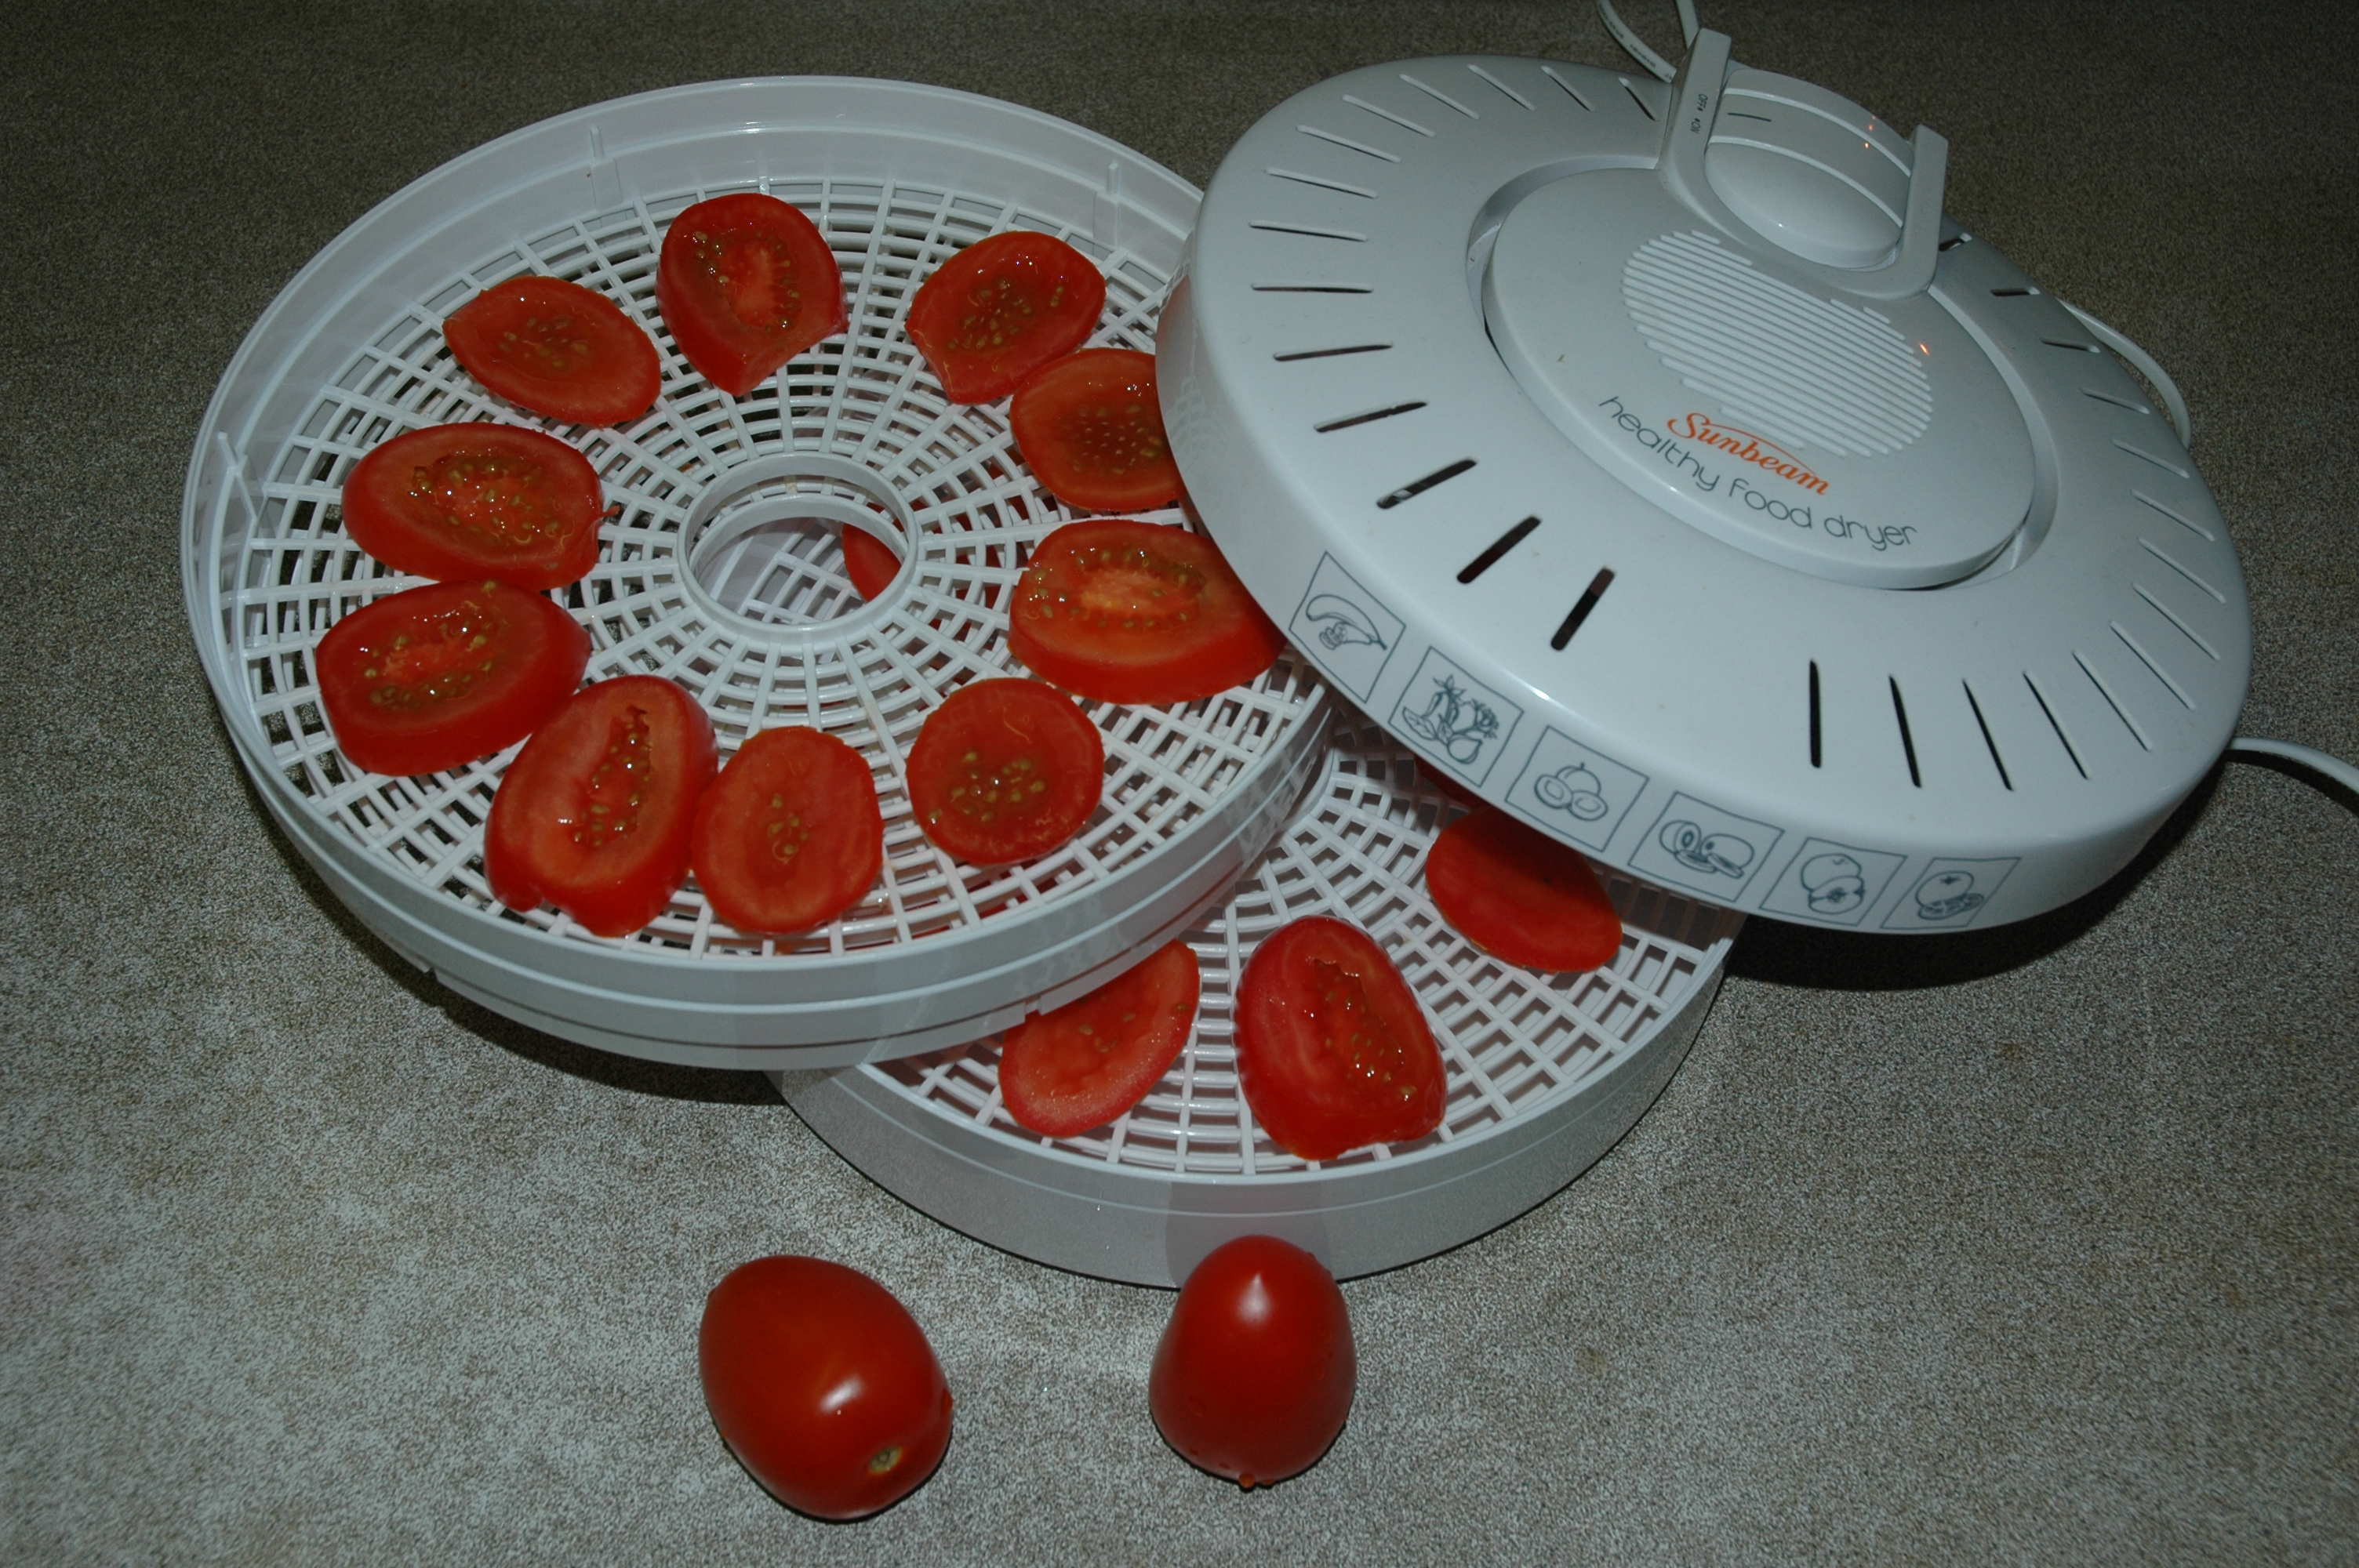 Food dehydrator - Wikipedia